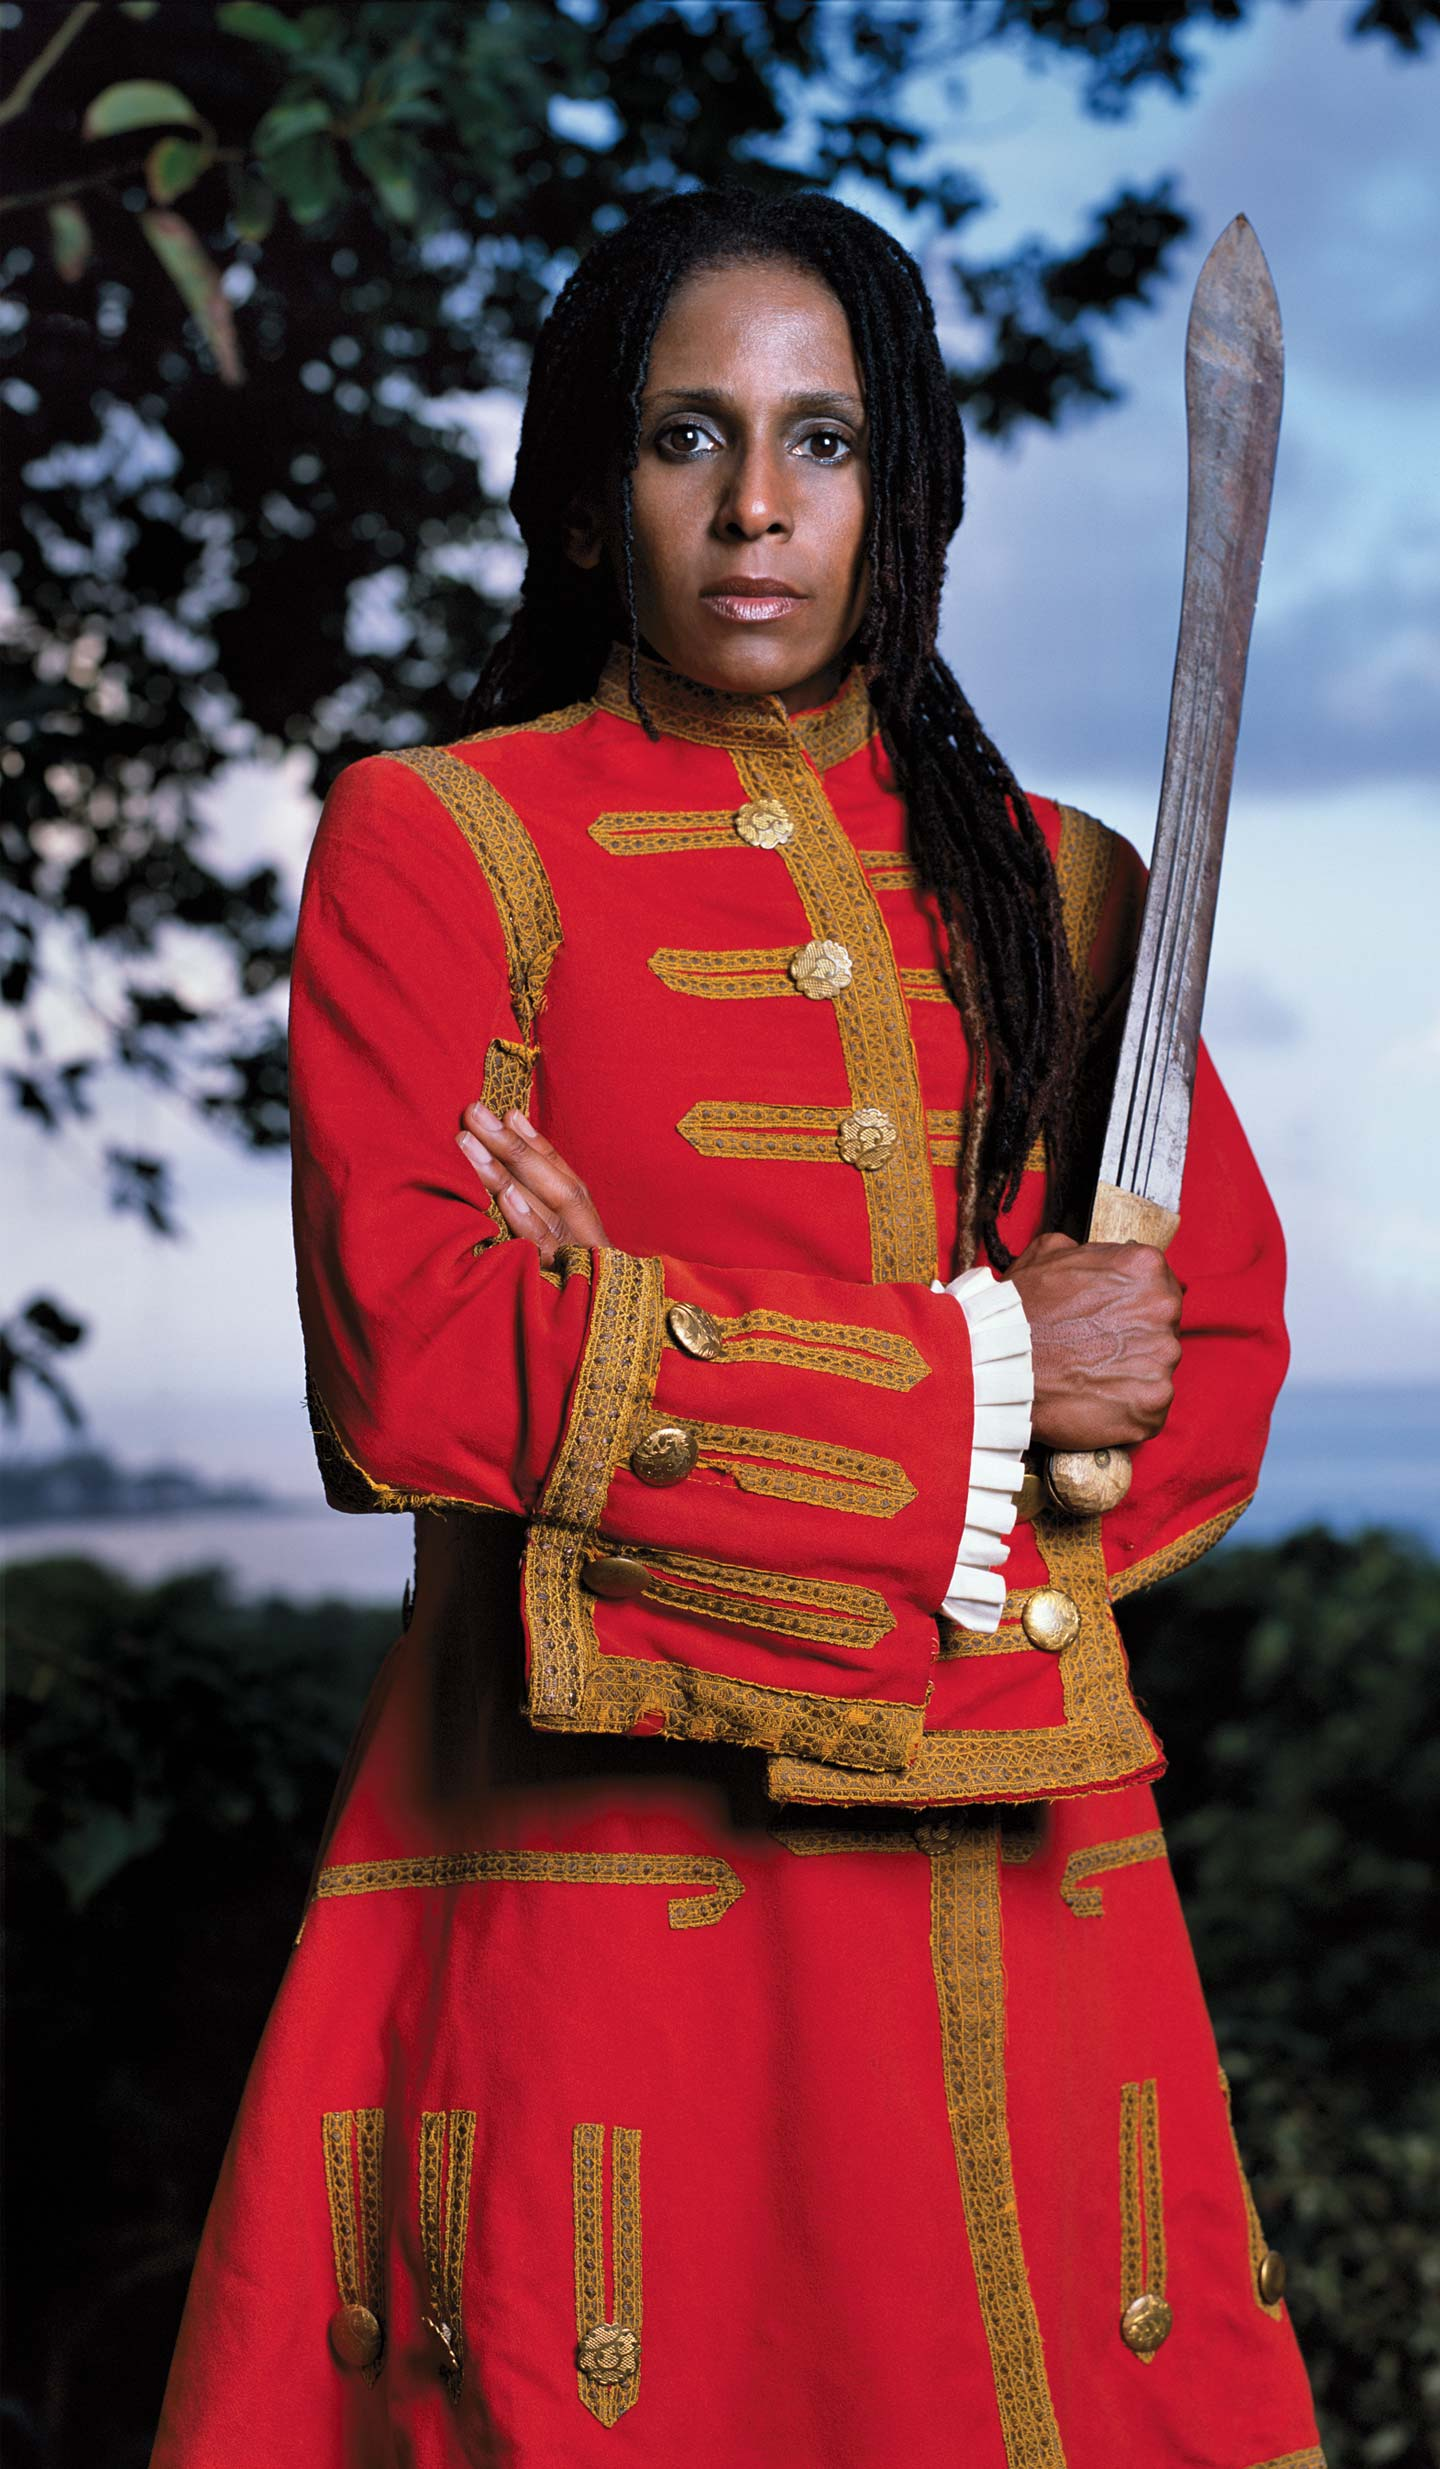 Red Coat by Renee Cox, 2004, Color digital inkjet print on water color paper AP1, 76 x 44